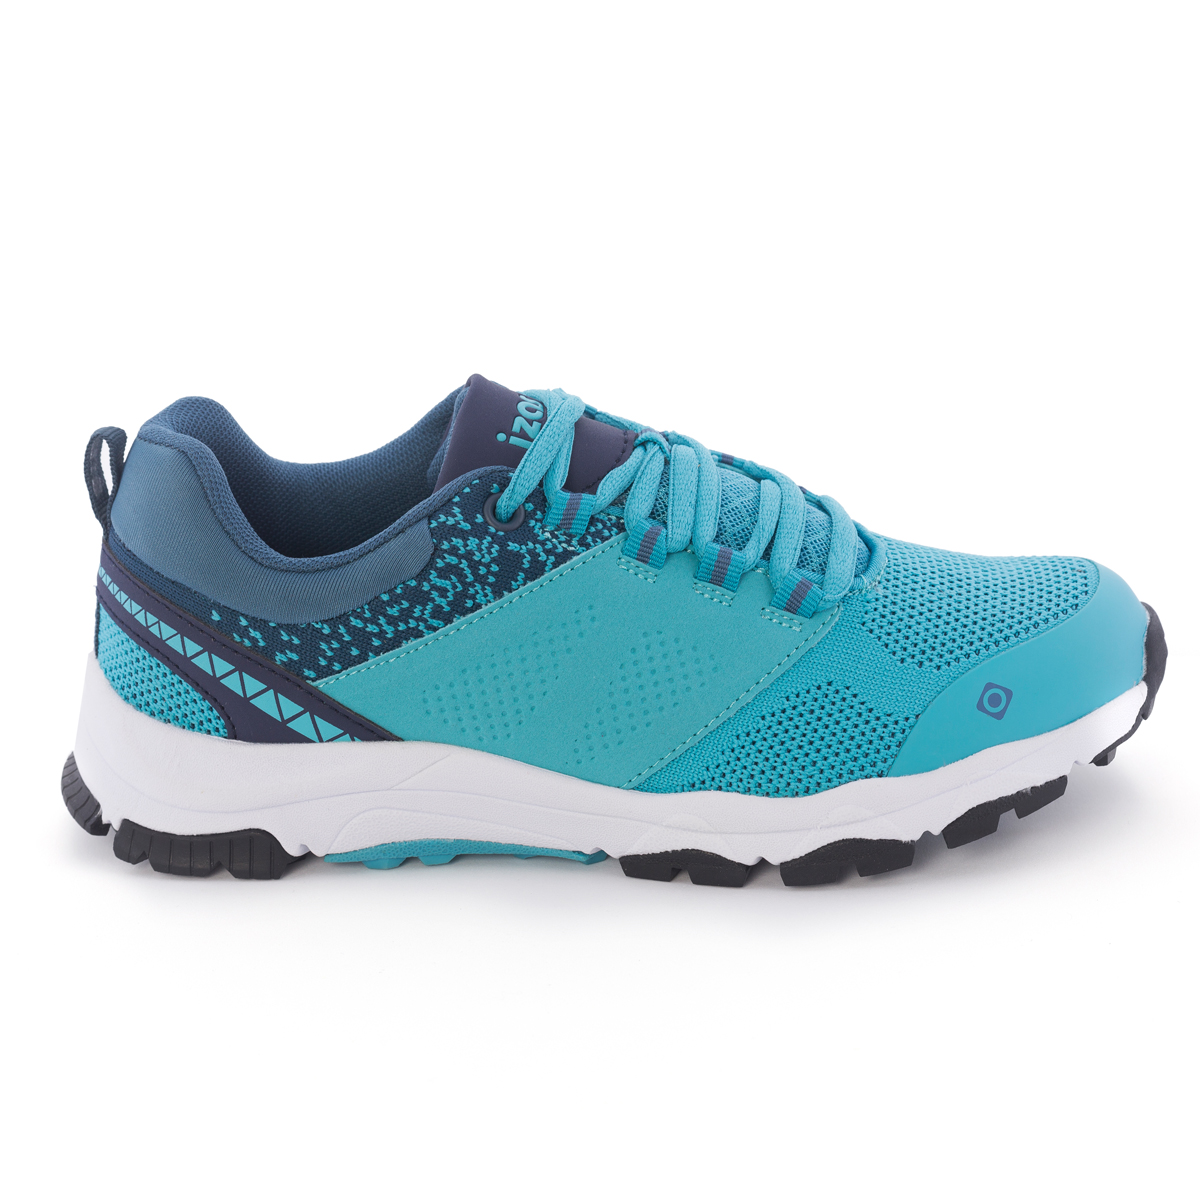 UNISEX'S FIYI RUNNING SHOES BLUE